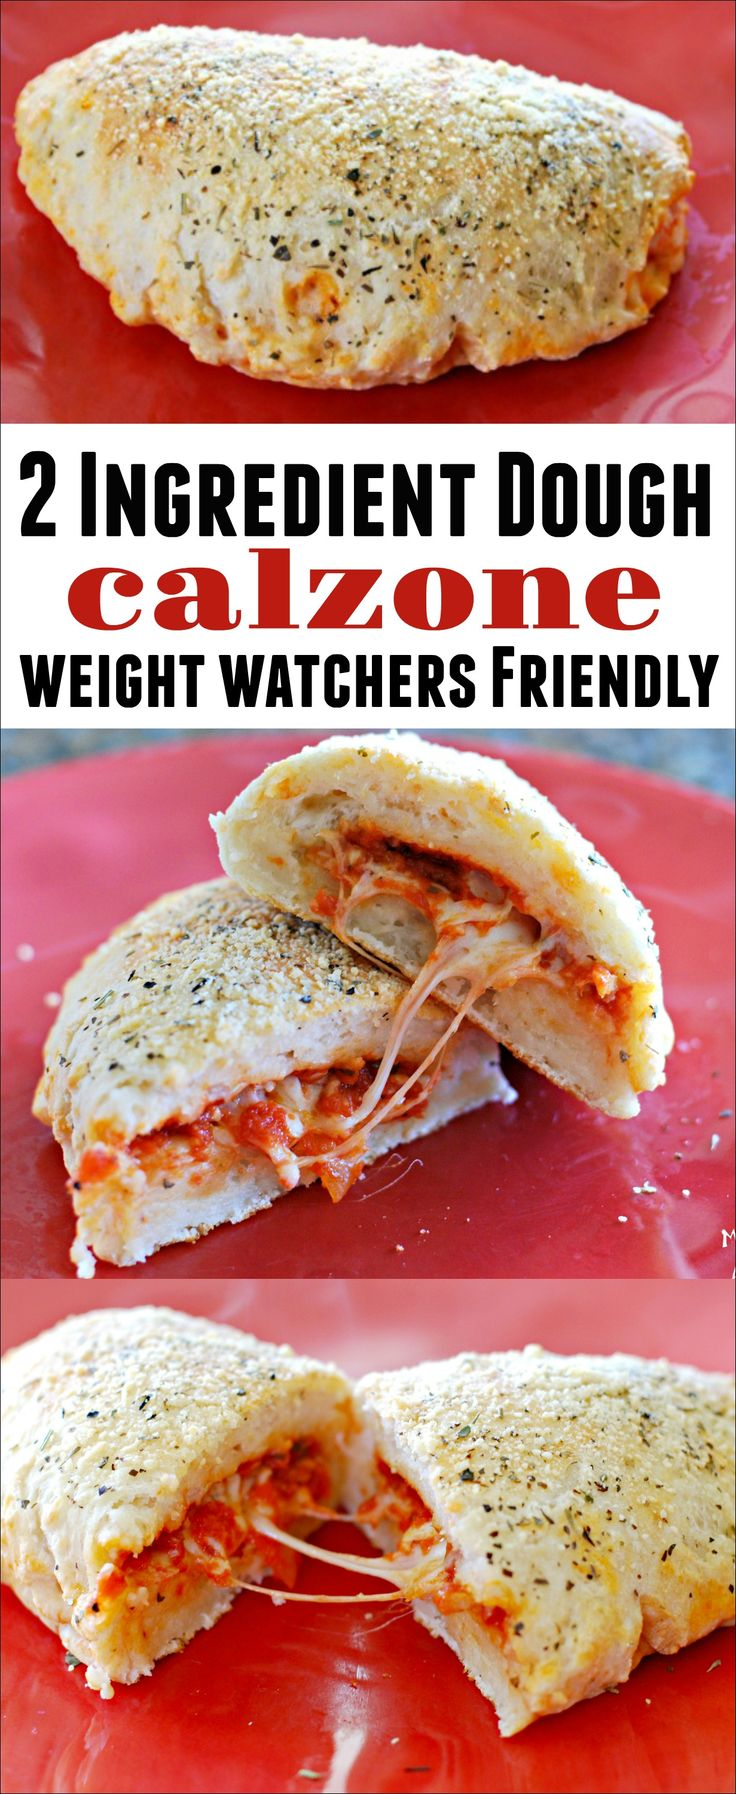 This 2 Ingredient Dough Calzone is easy to make and super filling. If you are following the Weight Watchers plan, it is 8 Freestyle points for a large, cheesy calzone. This Weight Watchers recipe use 2 Ingredient Dough. You will not feel deprived at all!